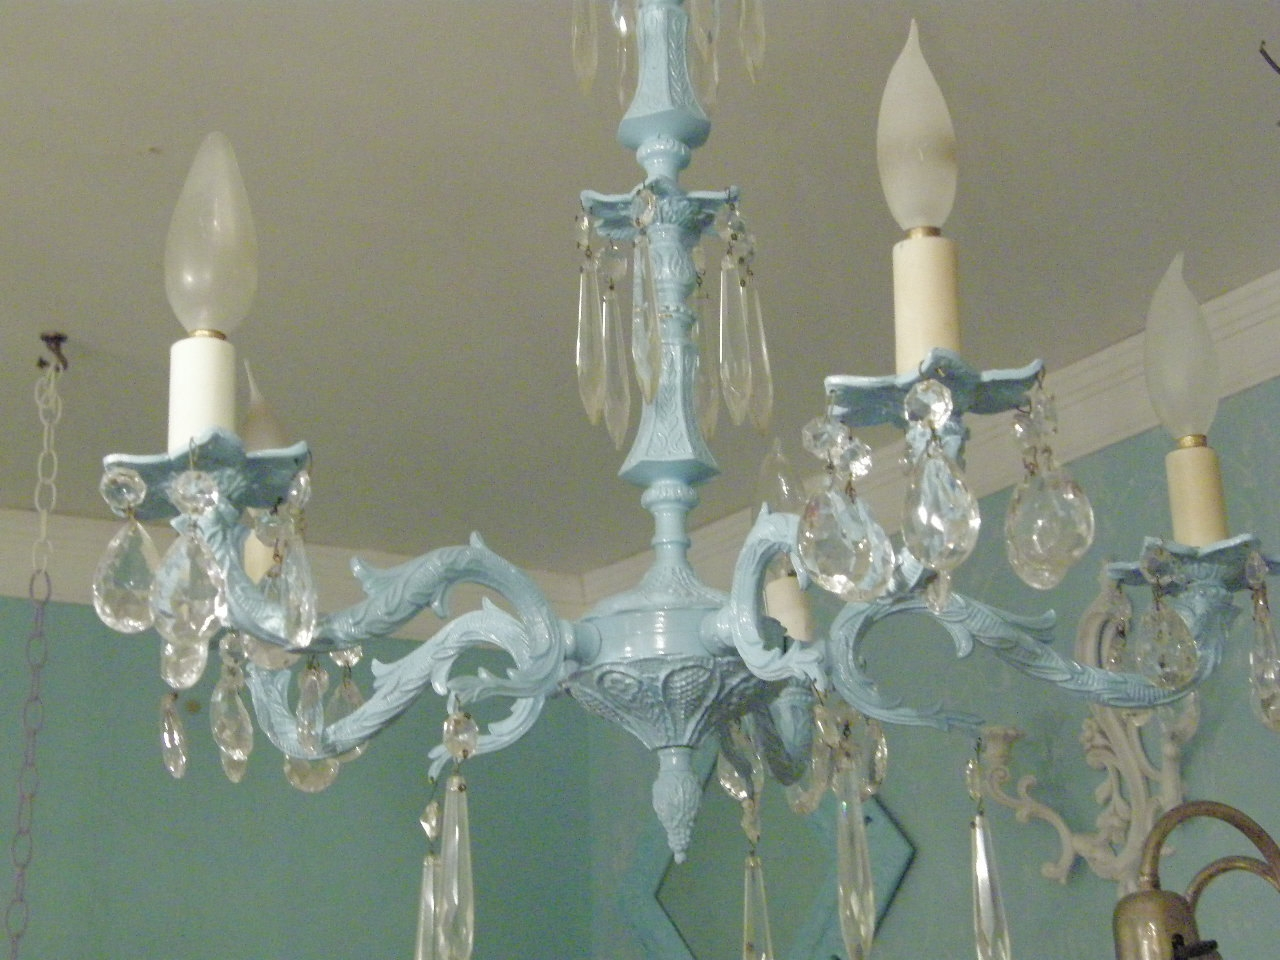 Vintage Crystal Chandelier Shab Chic Aqua Light Ba Blue Regarding Shabby Chic Chandeliers (View 4 of 15)